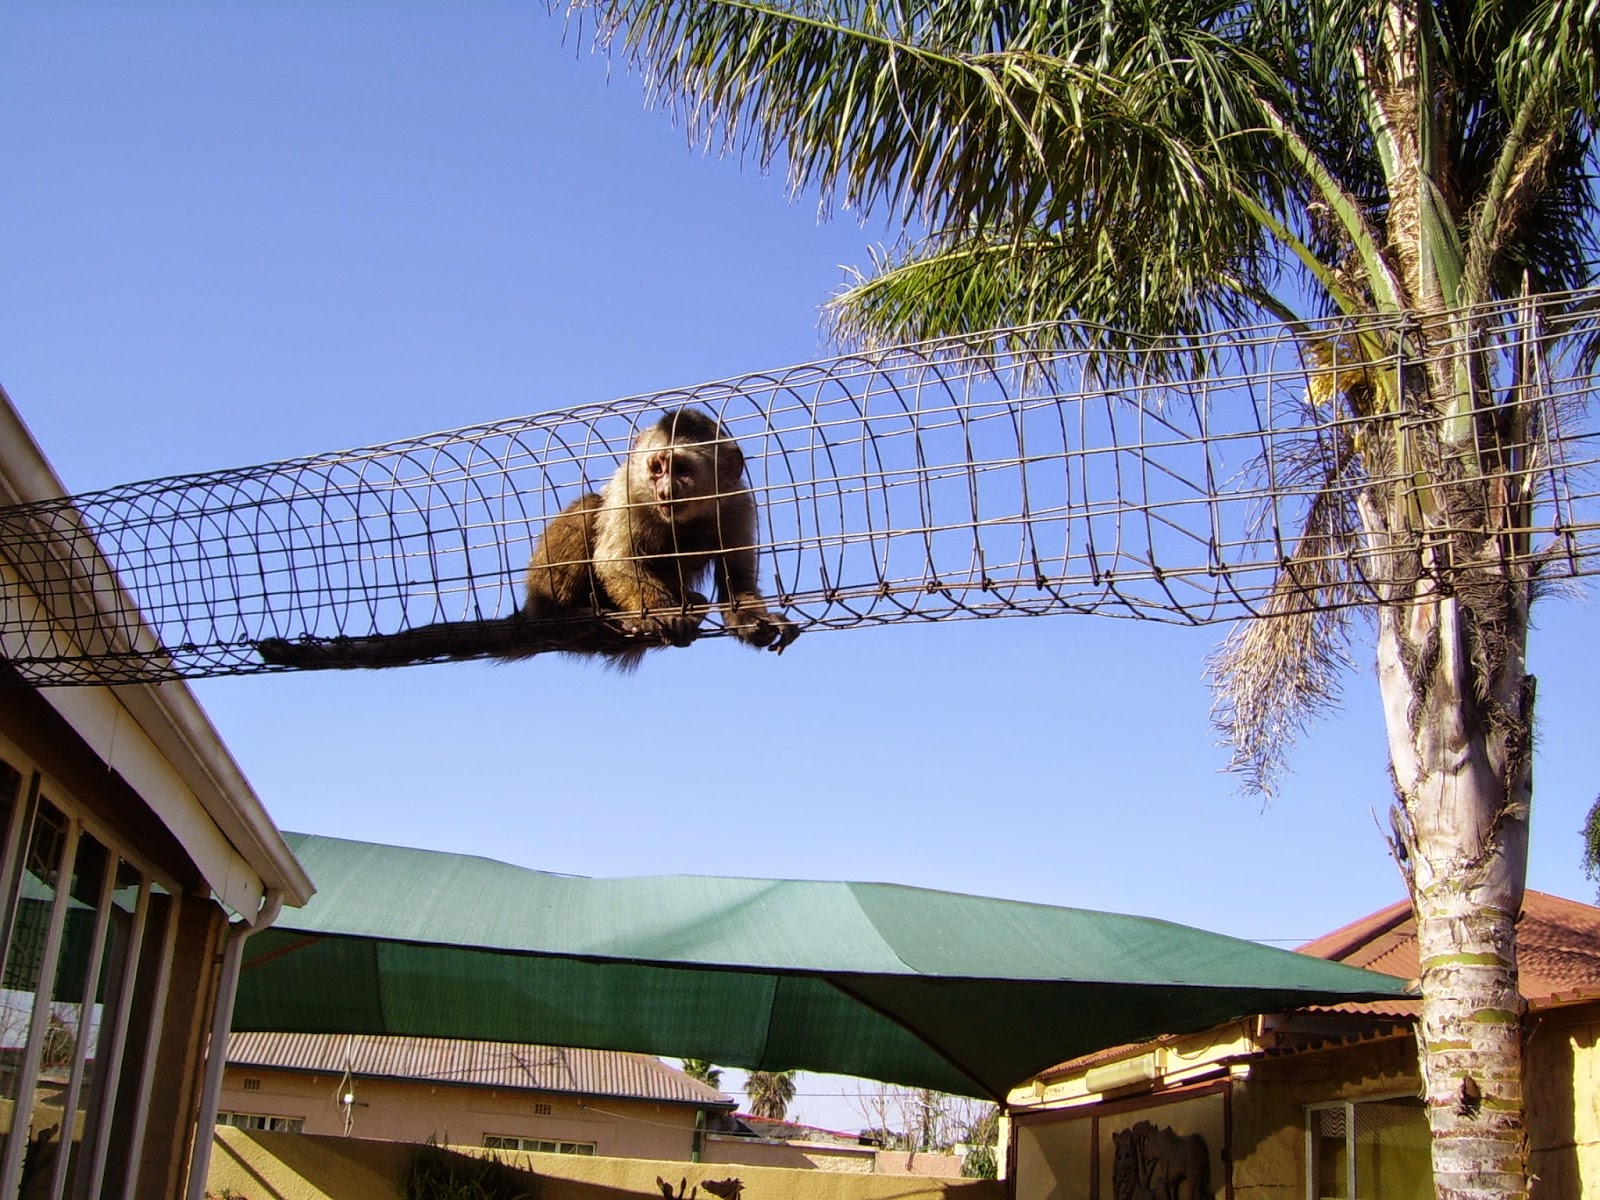 Rea's crazy mind: Playgroup for Capuchin pet monkeys in ...